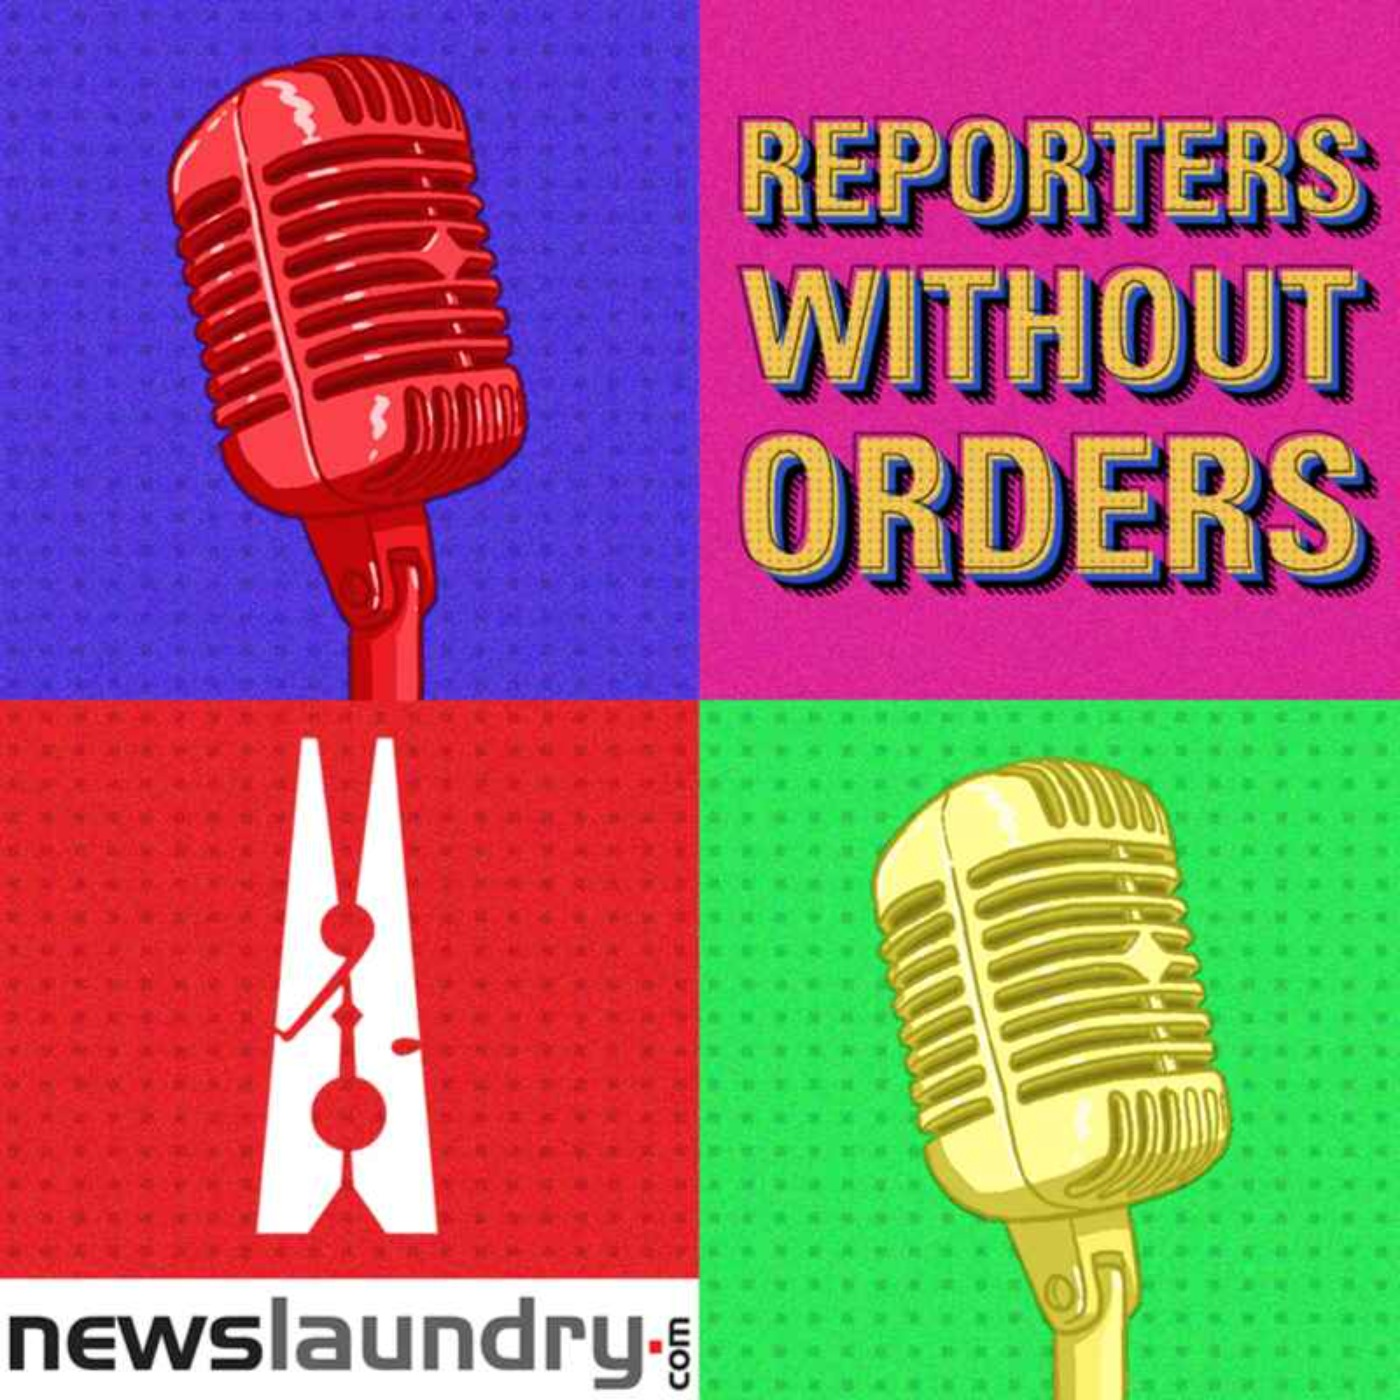 Reporters Without Orders Ep 163: Delhi riots follow-up and on the ground in Bengal